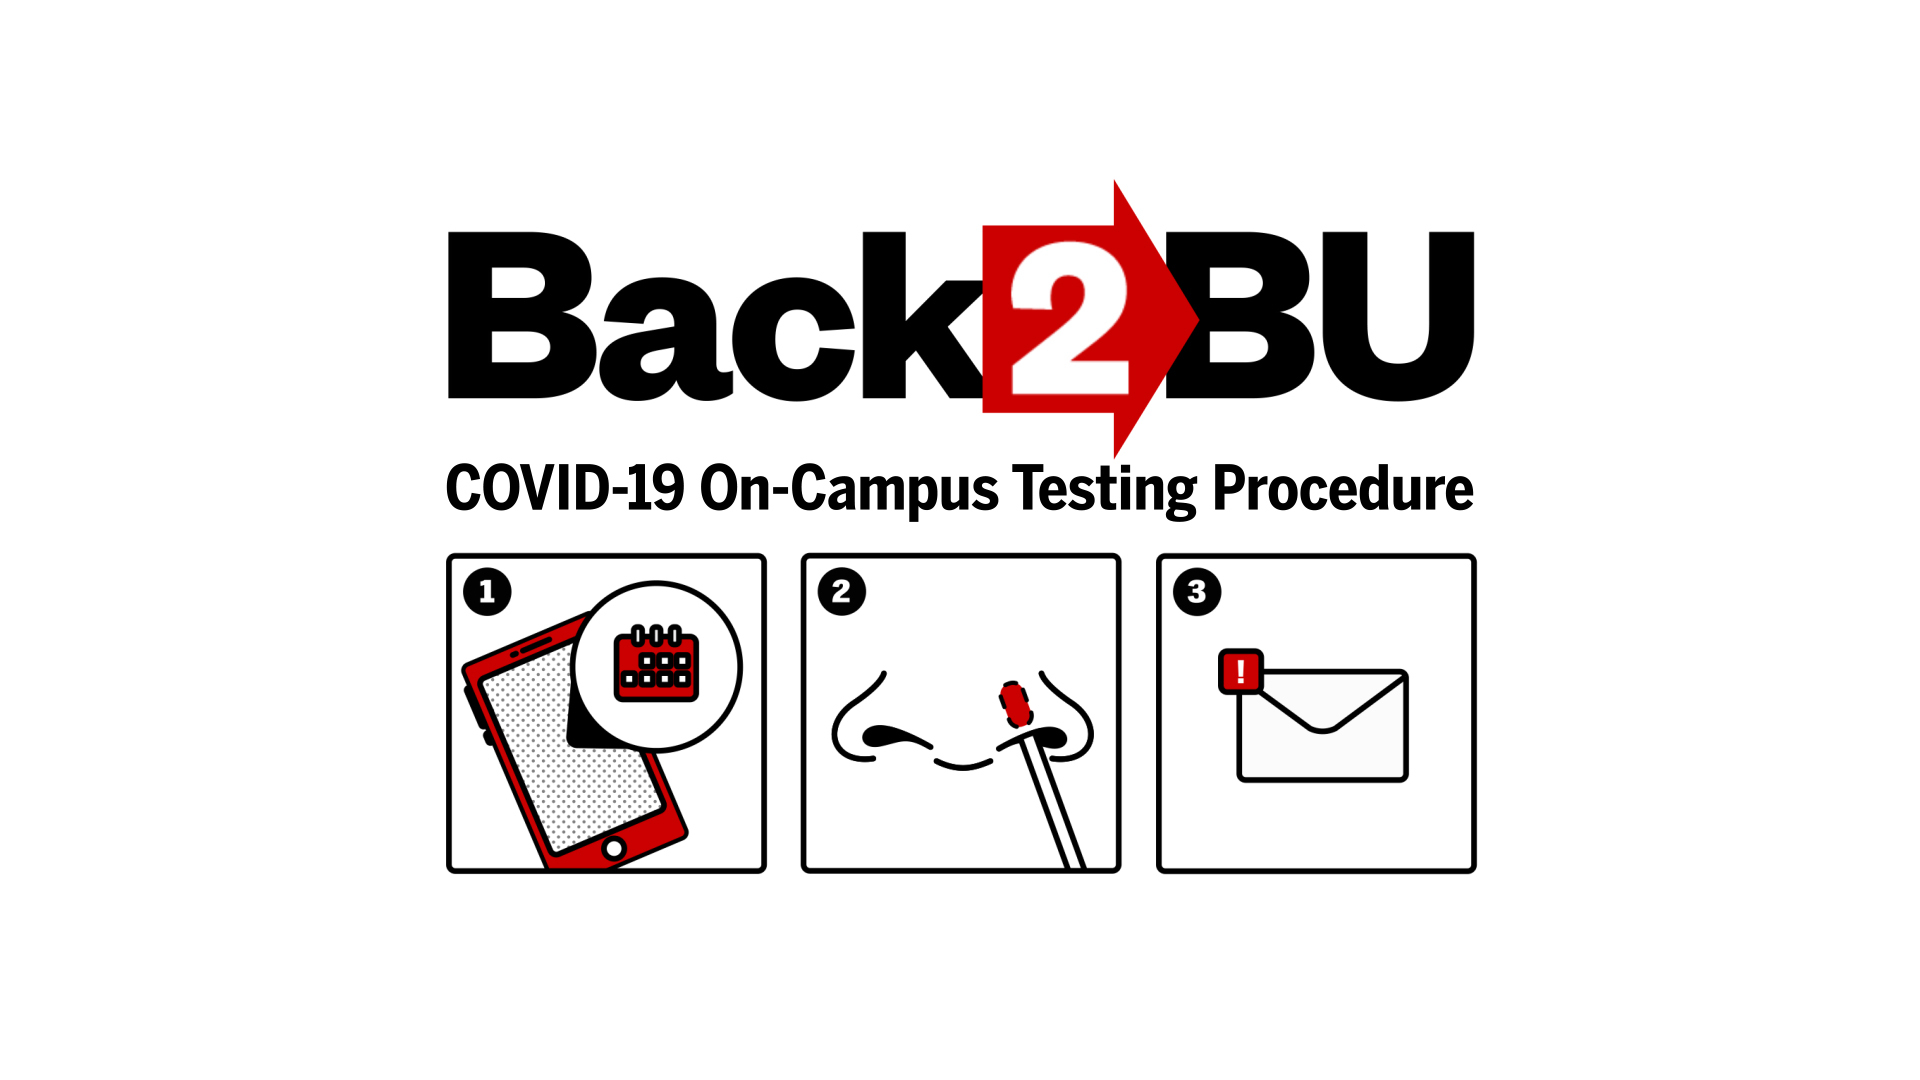 BU's COVID-19 On-Campus Testing Procedure Is as Easy as 1